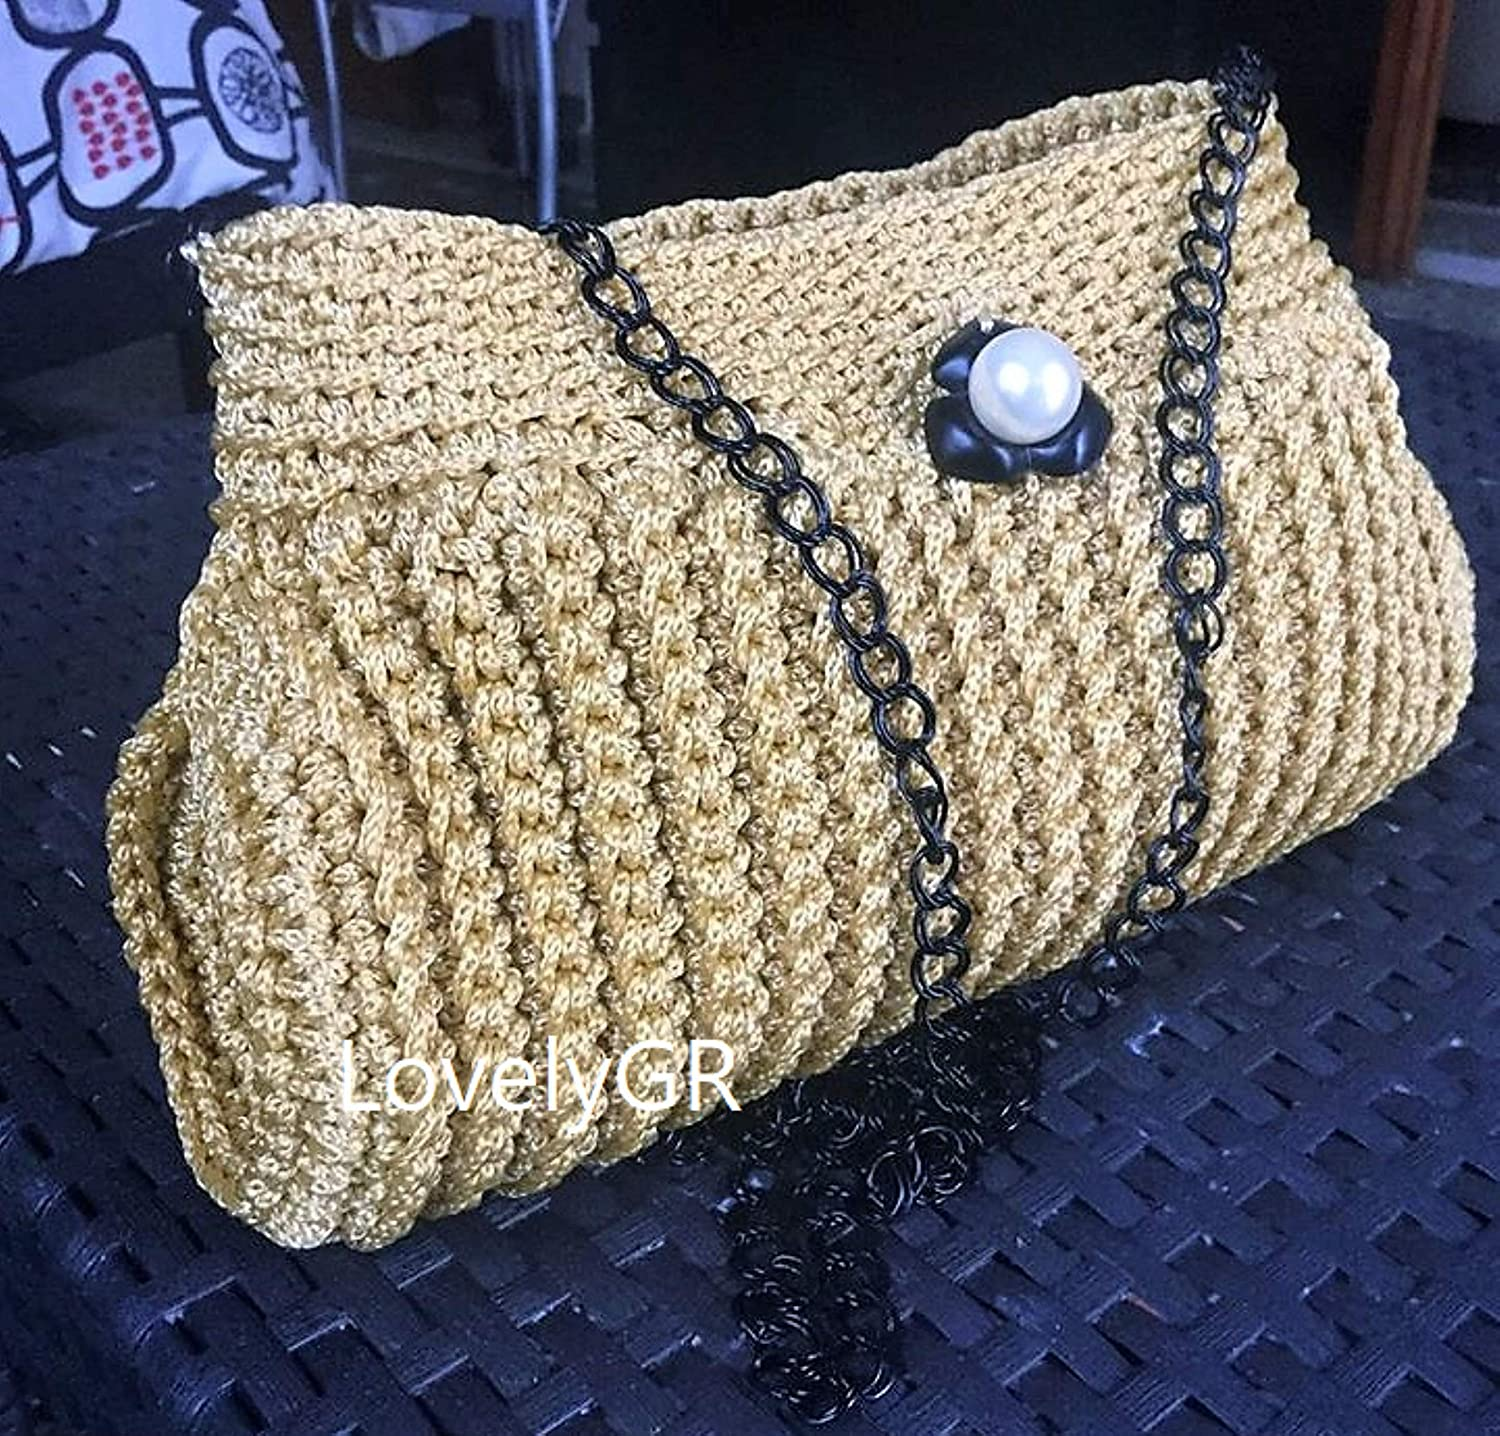 7bc2f108b0 Amazon.com  Crochet Women s Purse Hand Bag Shoulder Bag Polyester Yarn Gold  Color  Handmade